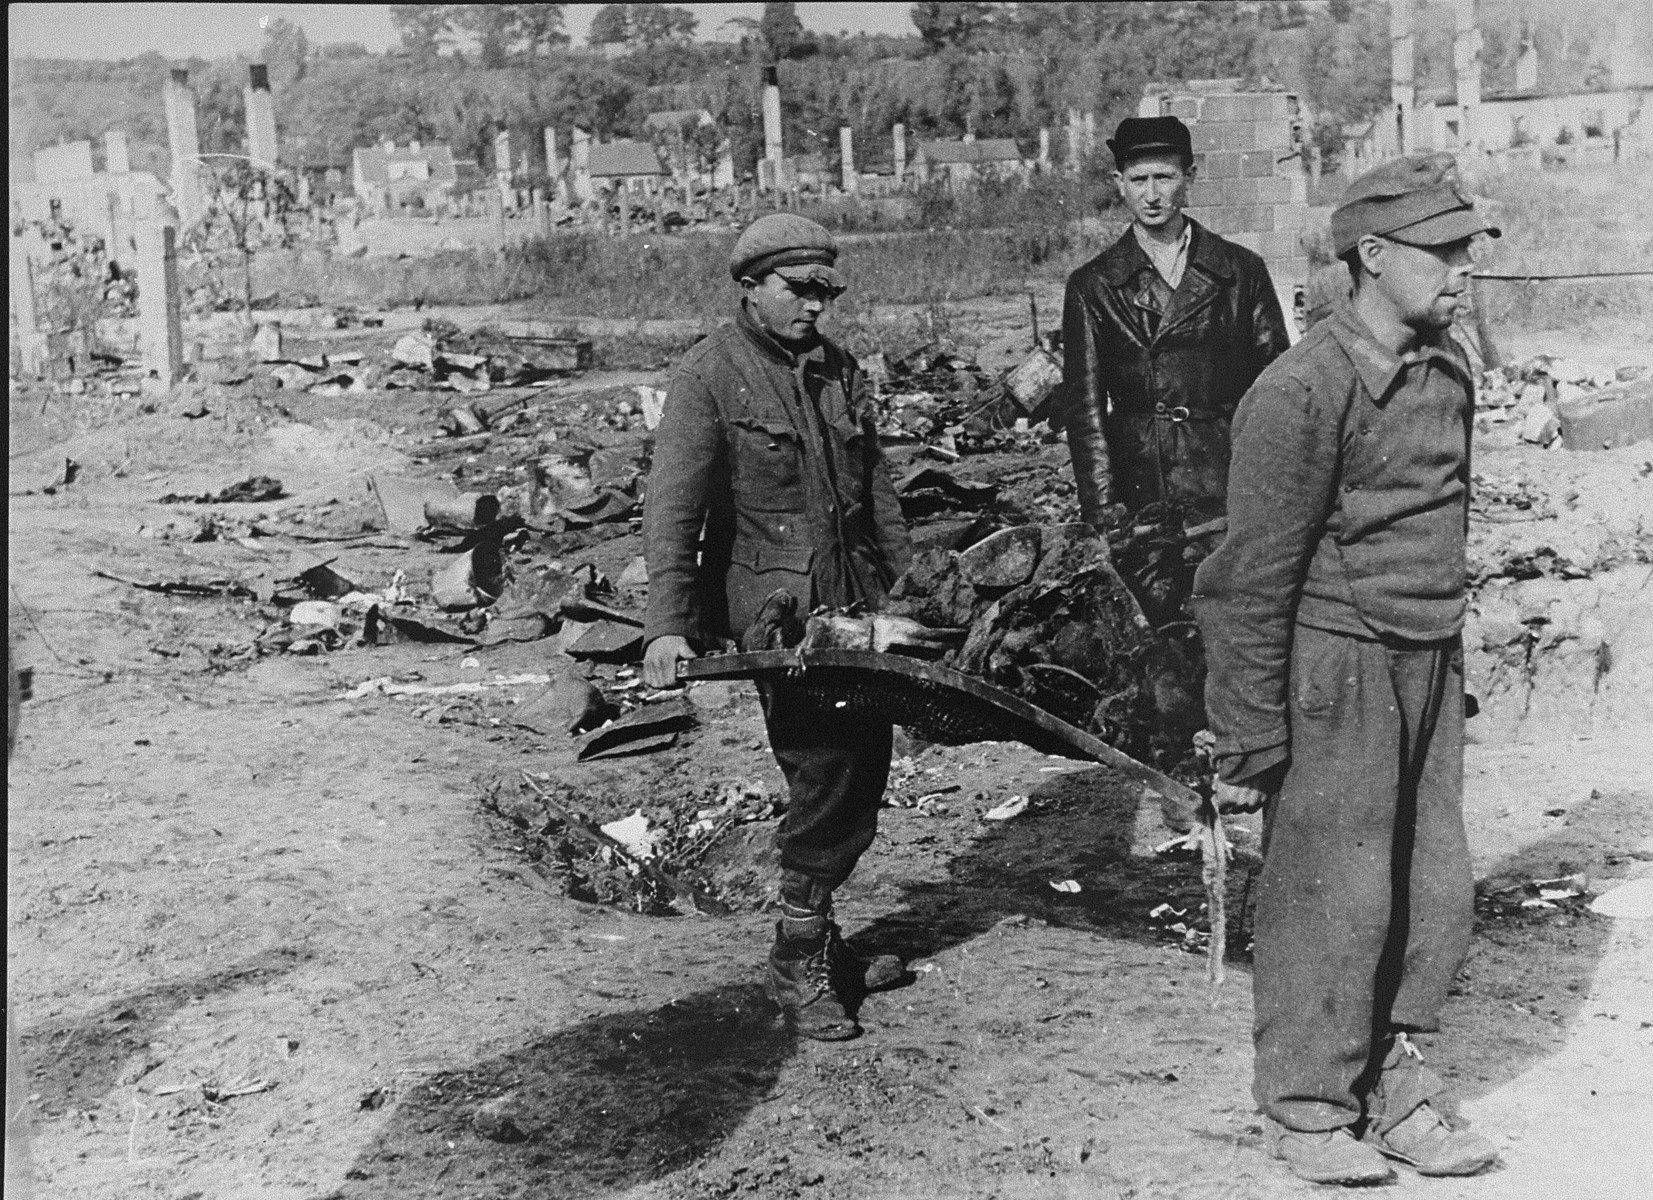 Under the supervision of a Soviet policeman, the charred remains of Jews from the Kovno ghetto are carried on a makeshift stretcher to a mass grave.  The man in the foreground appears to be a German POW.  Behind him is Moshe Volbershteyn, a member of the Zionist underground who is working for the Chevre Kaddisha, Jewish burial society.